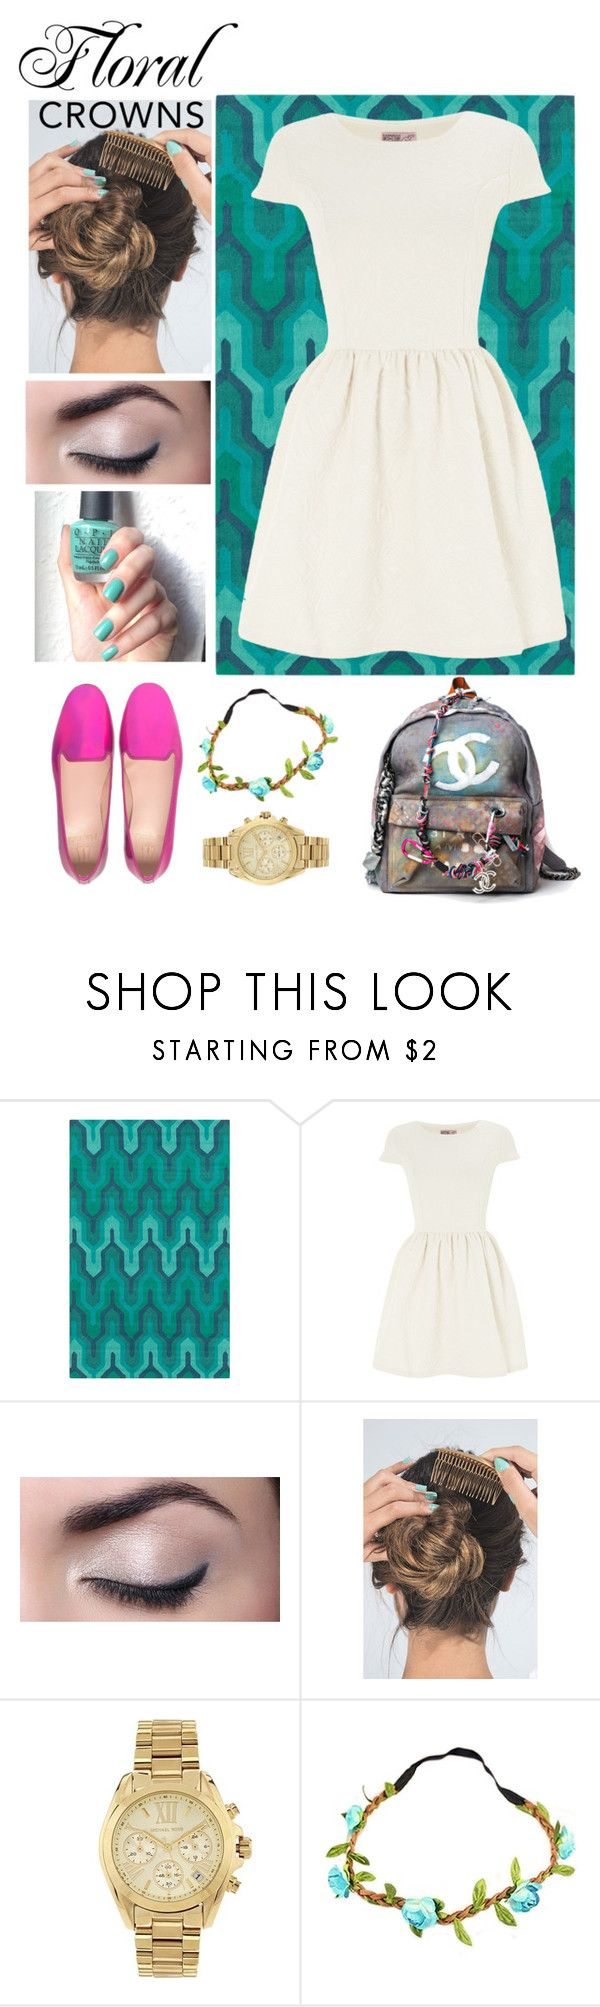 """""""Untitled #29"""" by valerialeonetty on Polyvore featuring Belleza, Surya, Neon Rose, Pretty Ballerinas, Luv Aj, OPI y Michael Kors"""